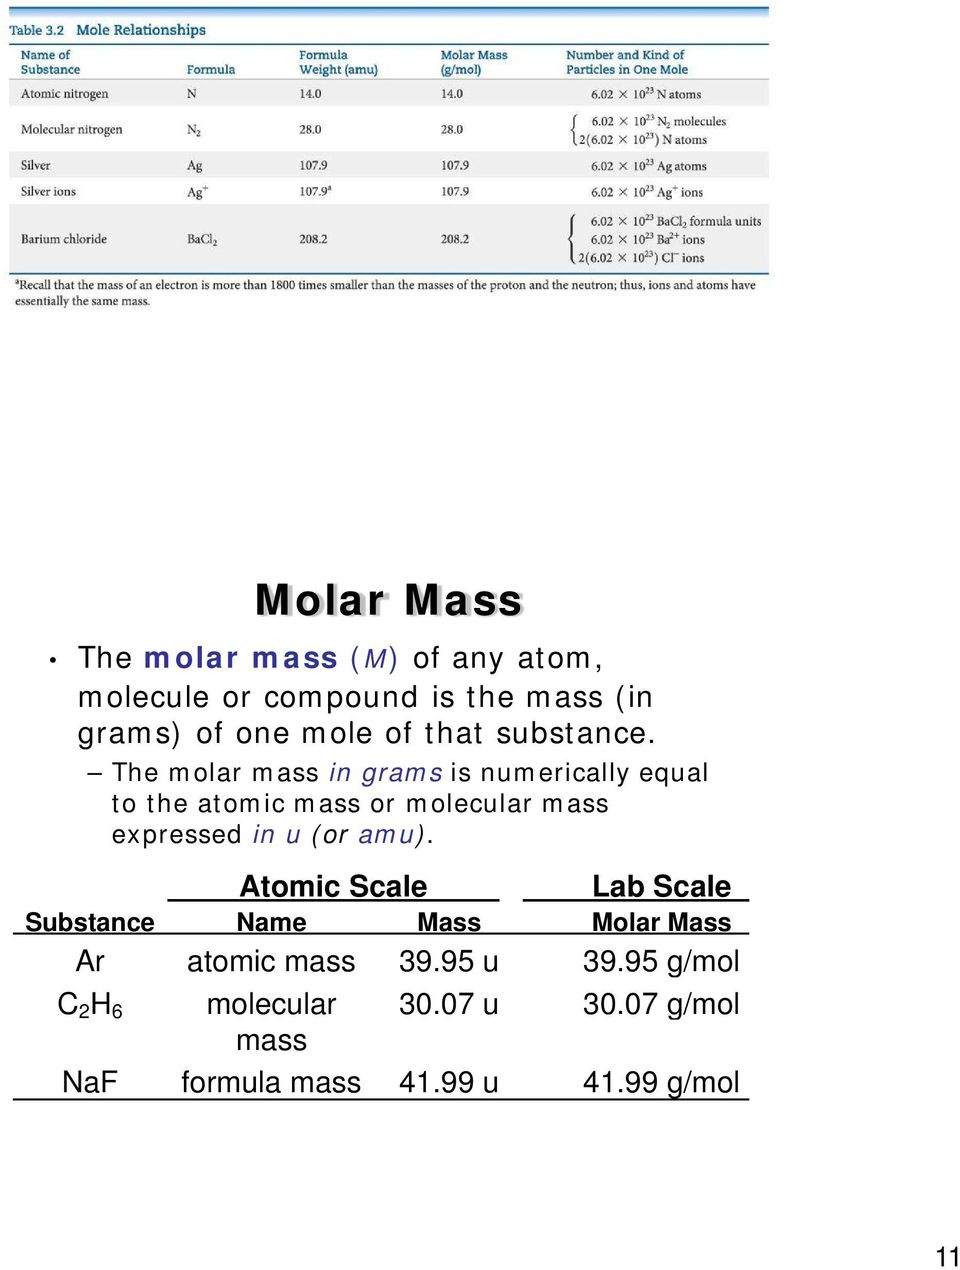 The molar mass in grams is numerically equal to the atomic mass or molecular mass expressed in u